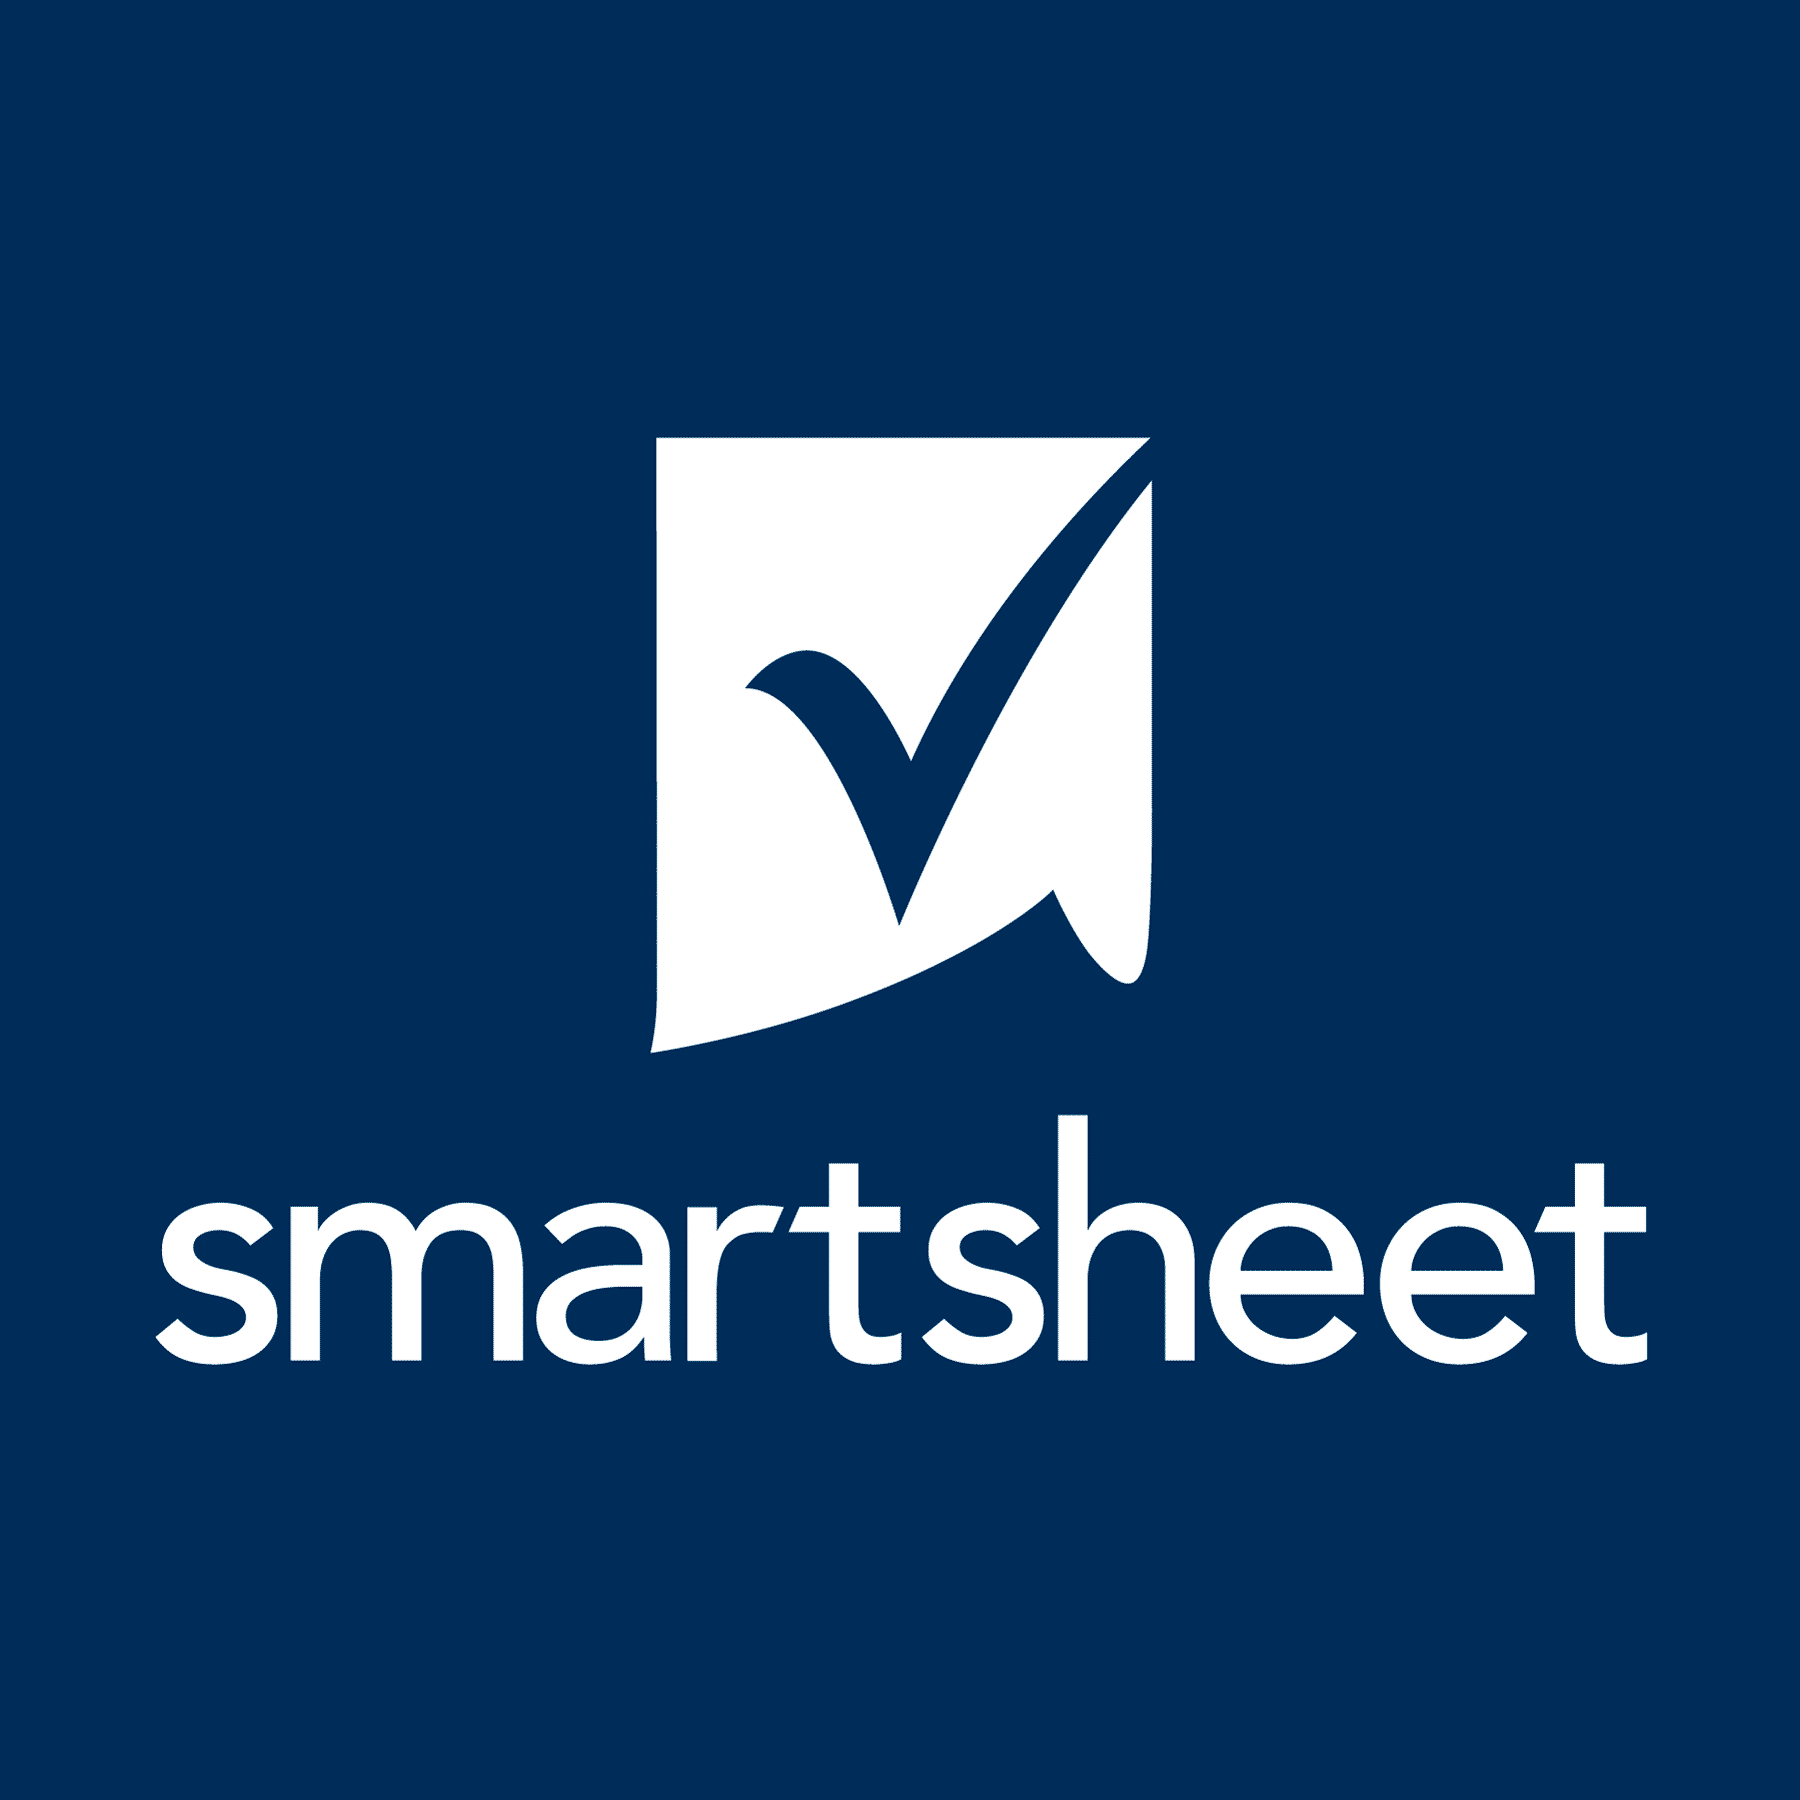 Smartsheet - Project Management Software : SaaSworthy.com